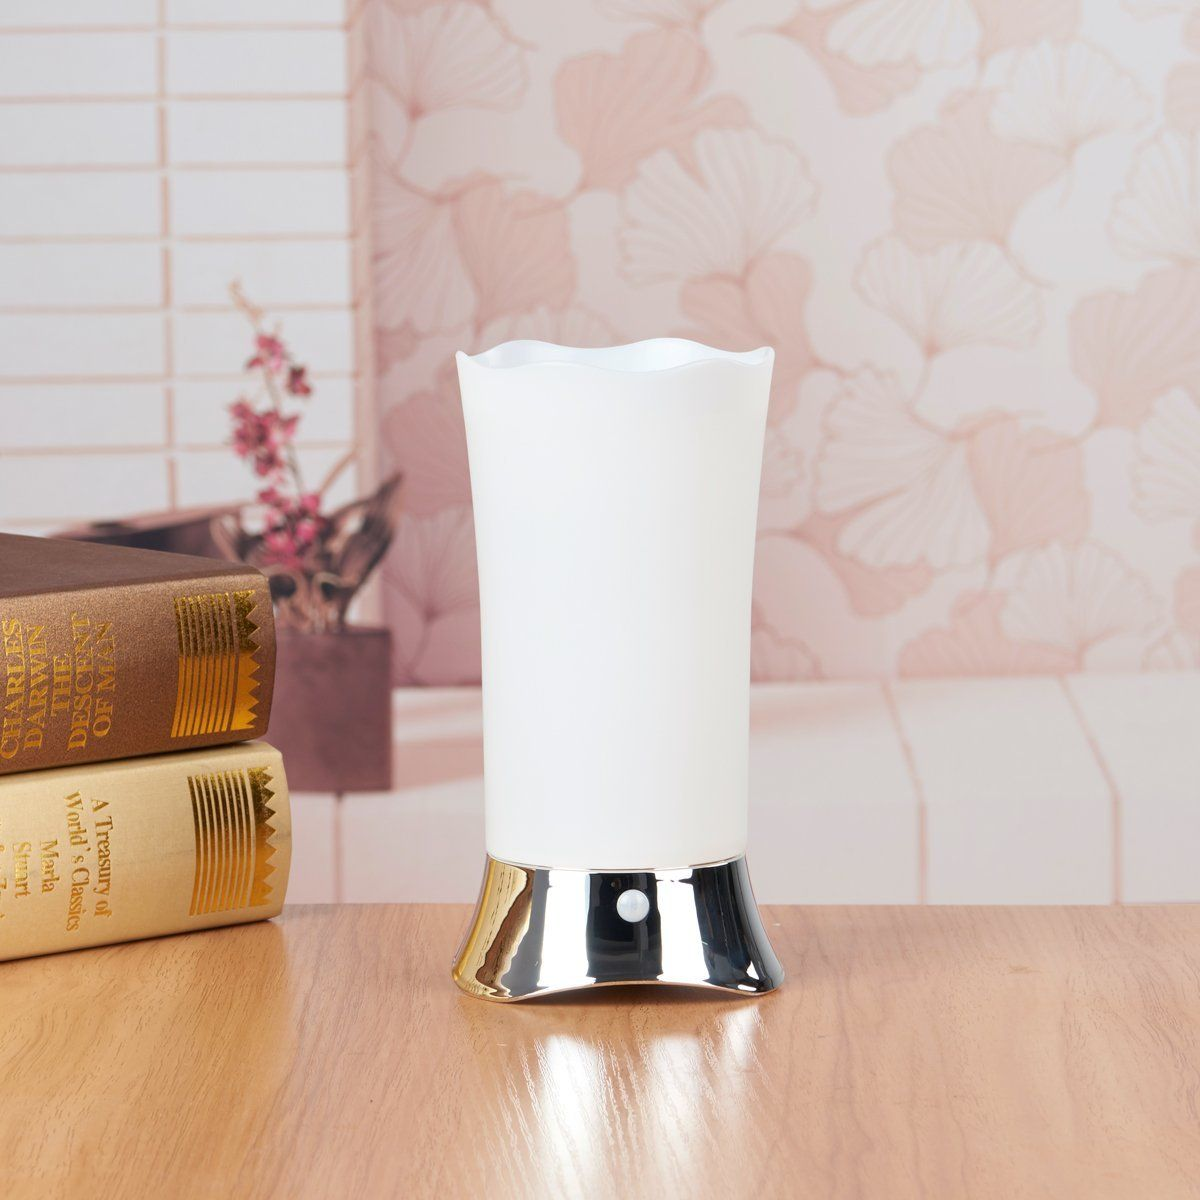 Battery operated table lamps indoor - Zeefo Table Lamps Indoor Motion Sensor Led Night Light Portable Retro Battery Powered Light For